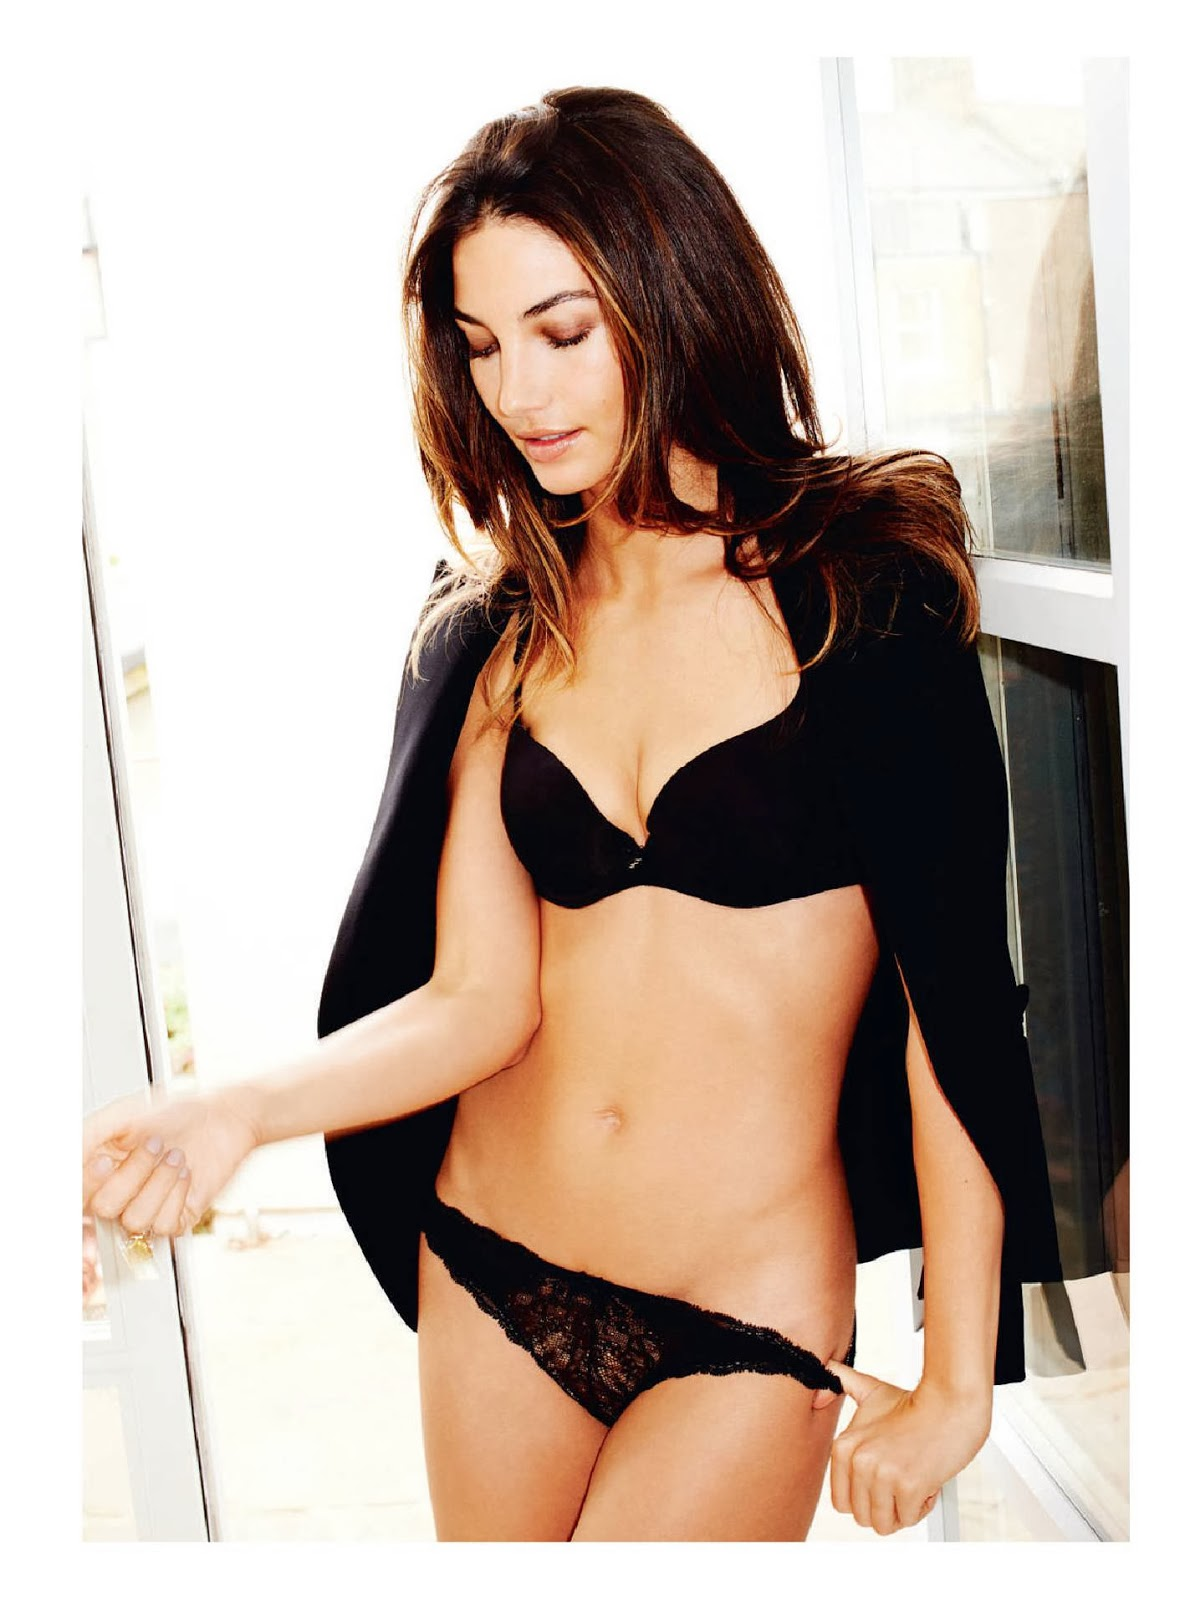 Lily Aldridge strips down to black lingerie for Esquire UK